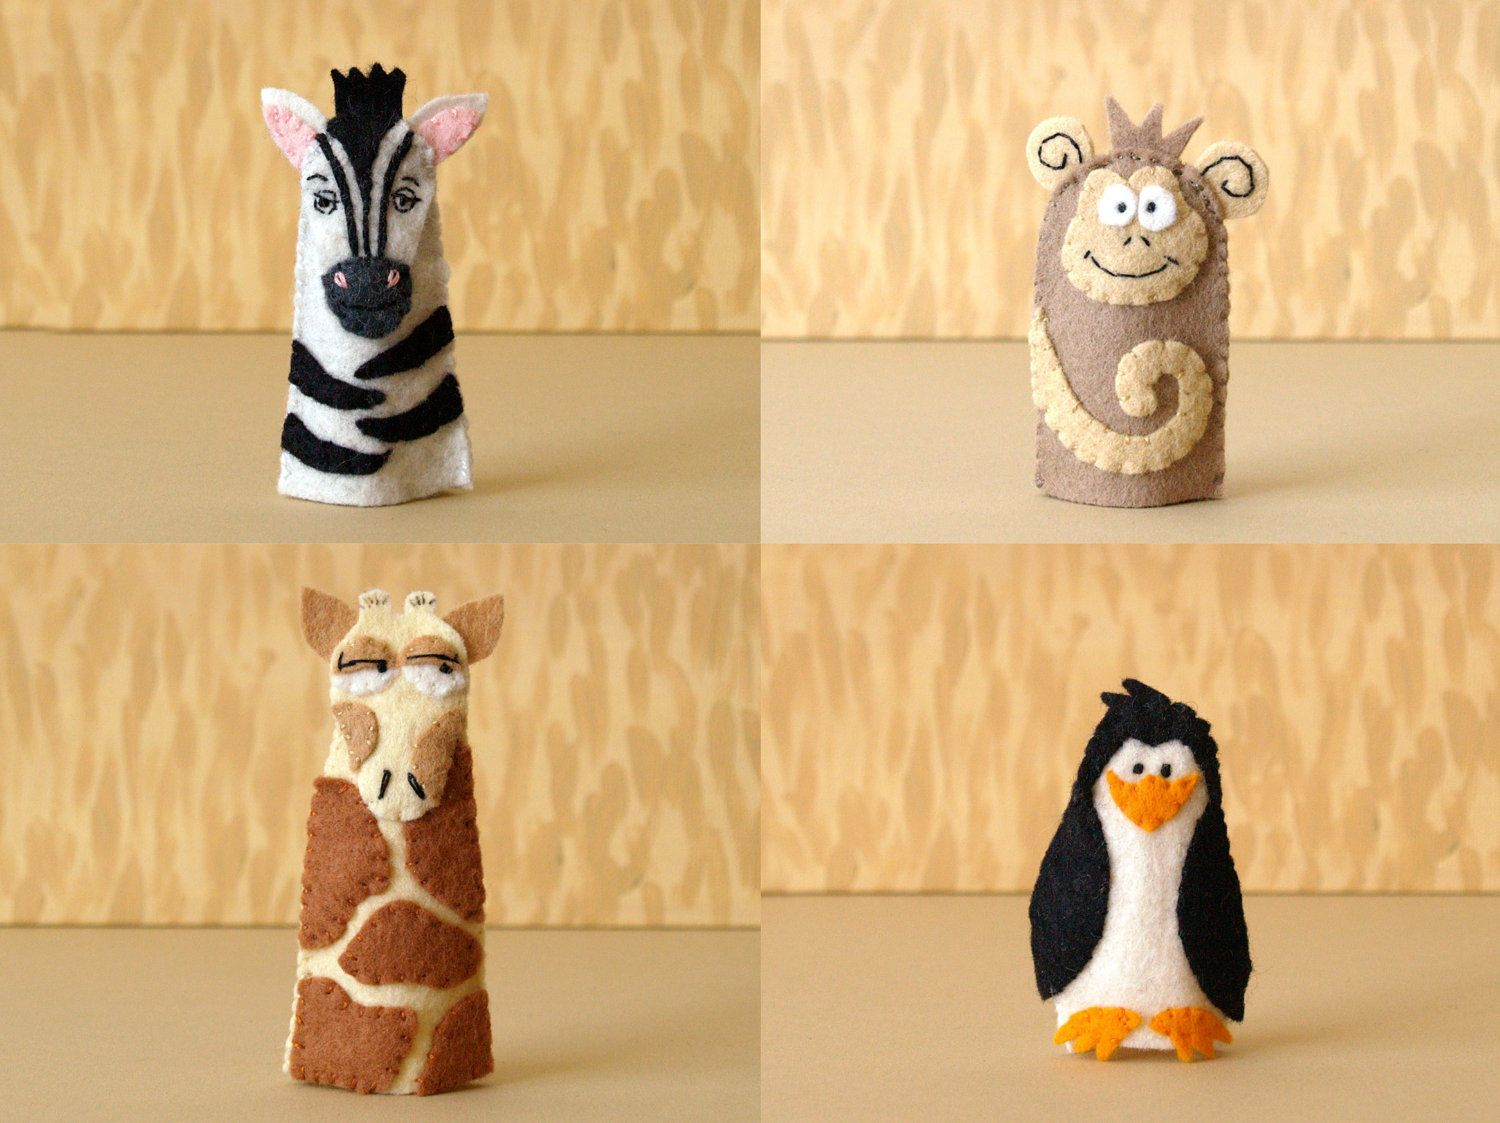 Super cute zoo animal finger puppets from Etsy.